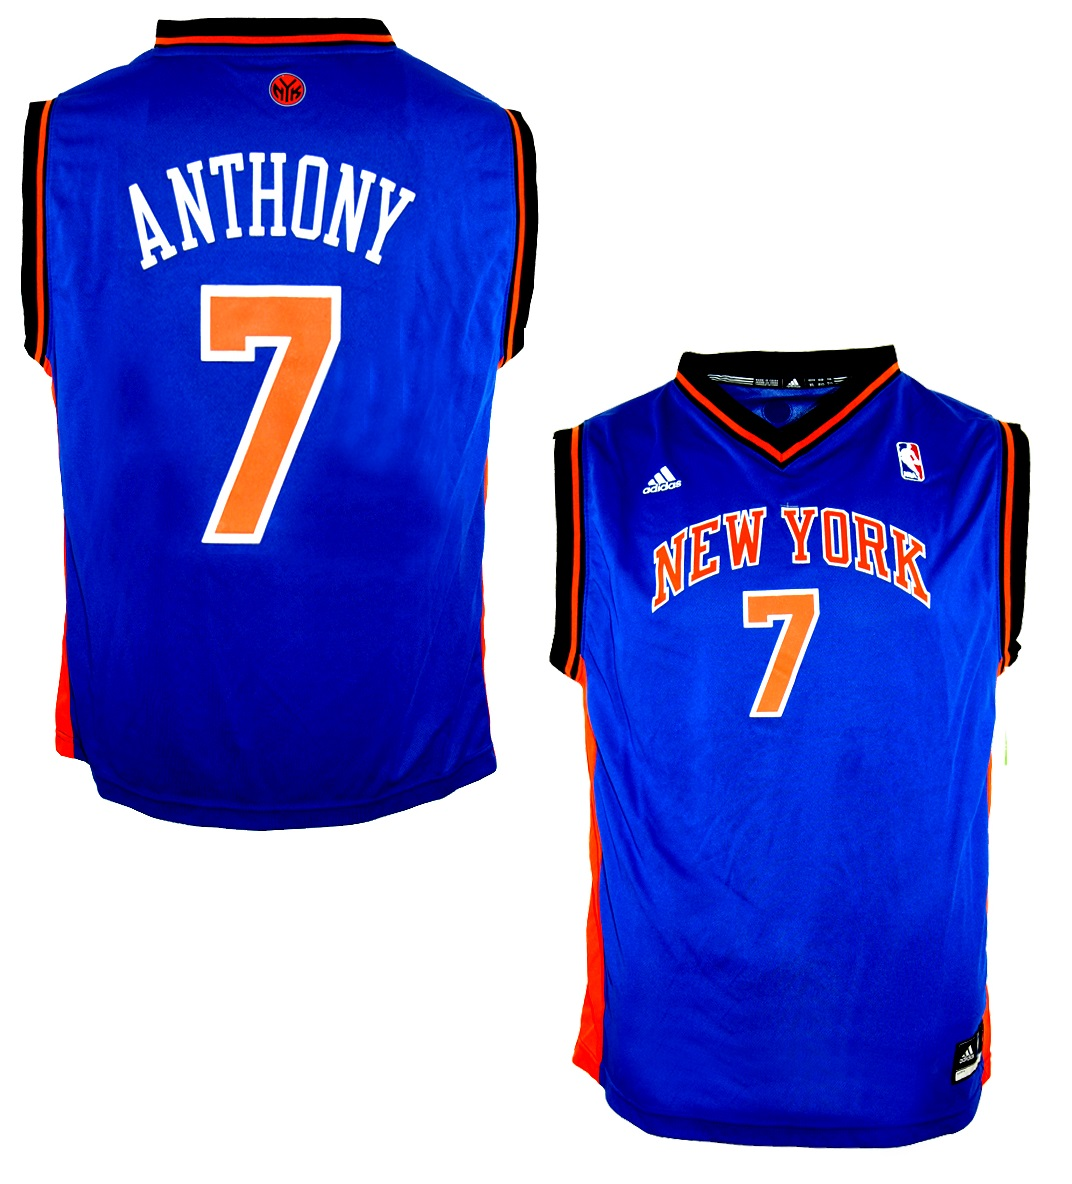 save off 2807b d7b45 Adidas New York Knicks jersey Home NBA 7 Carmelo Anthony ...